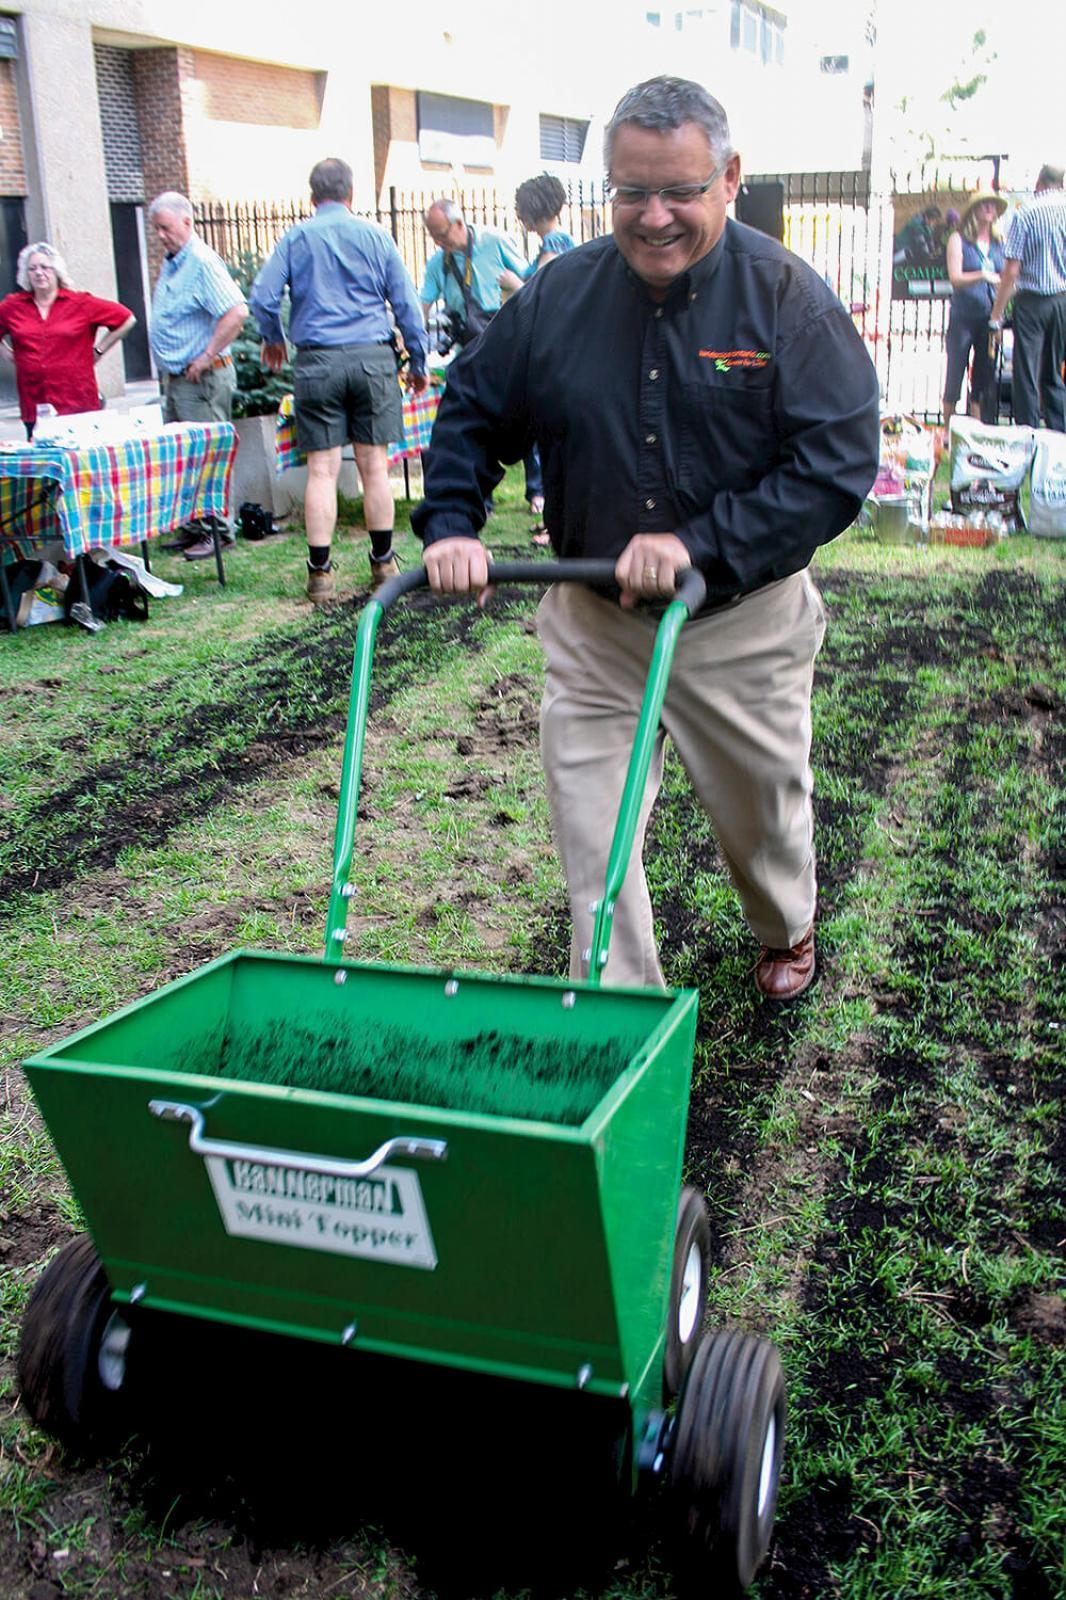 LO's public relations director Denis Flanagan proved he is not just another pretty face, when he took on the task improving the soil at Compost Awareness Week at a site in downtown Toronto.